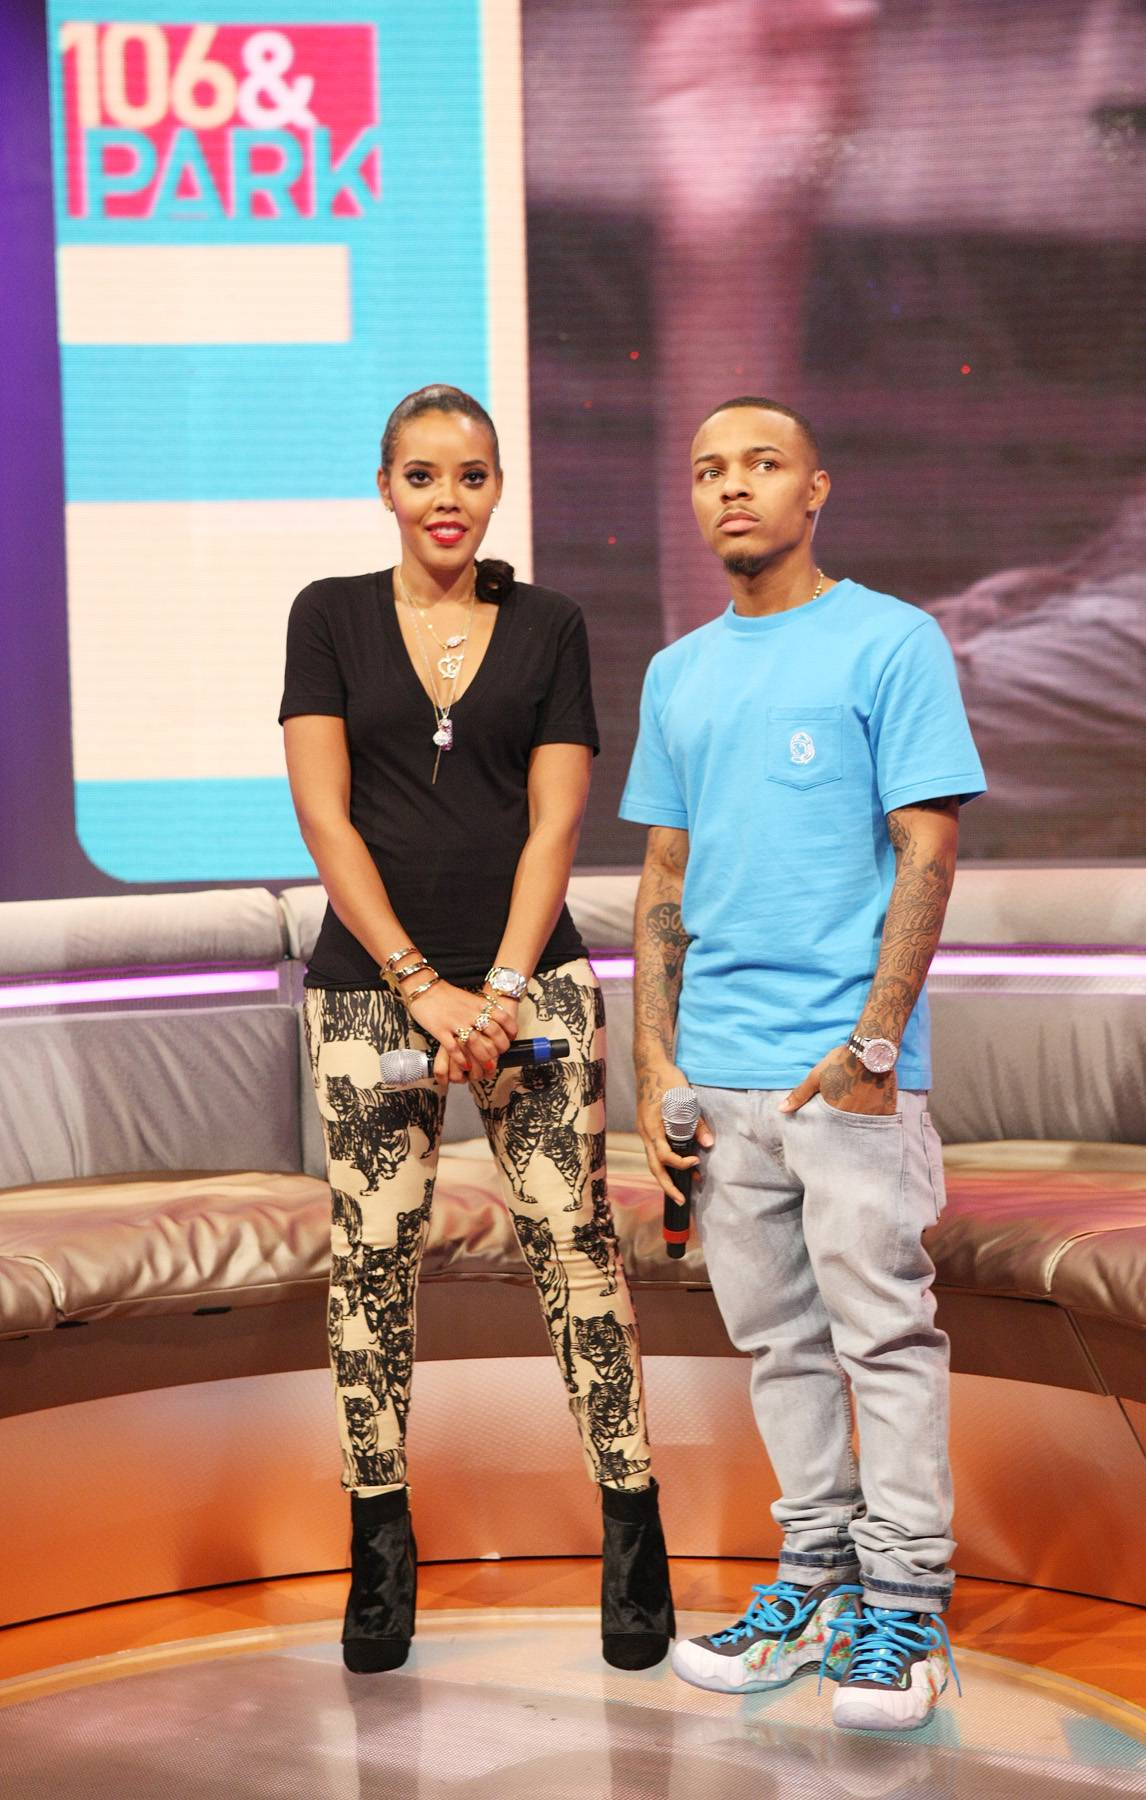 Ready Children? - 106 & Park hosts Angela Simmons and Bow Wow attend 106 & Park September 12, 2013, in New York City. (Photo: Bennett Raglin/BET/Getty Images for BET)